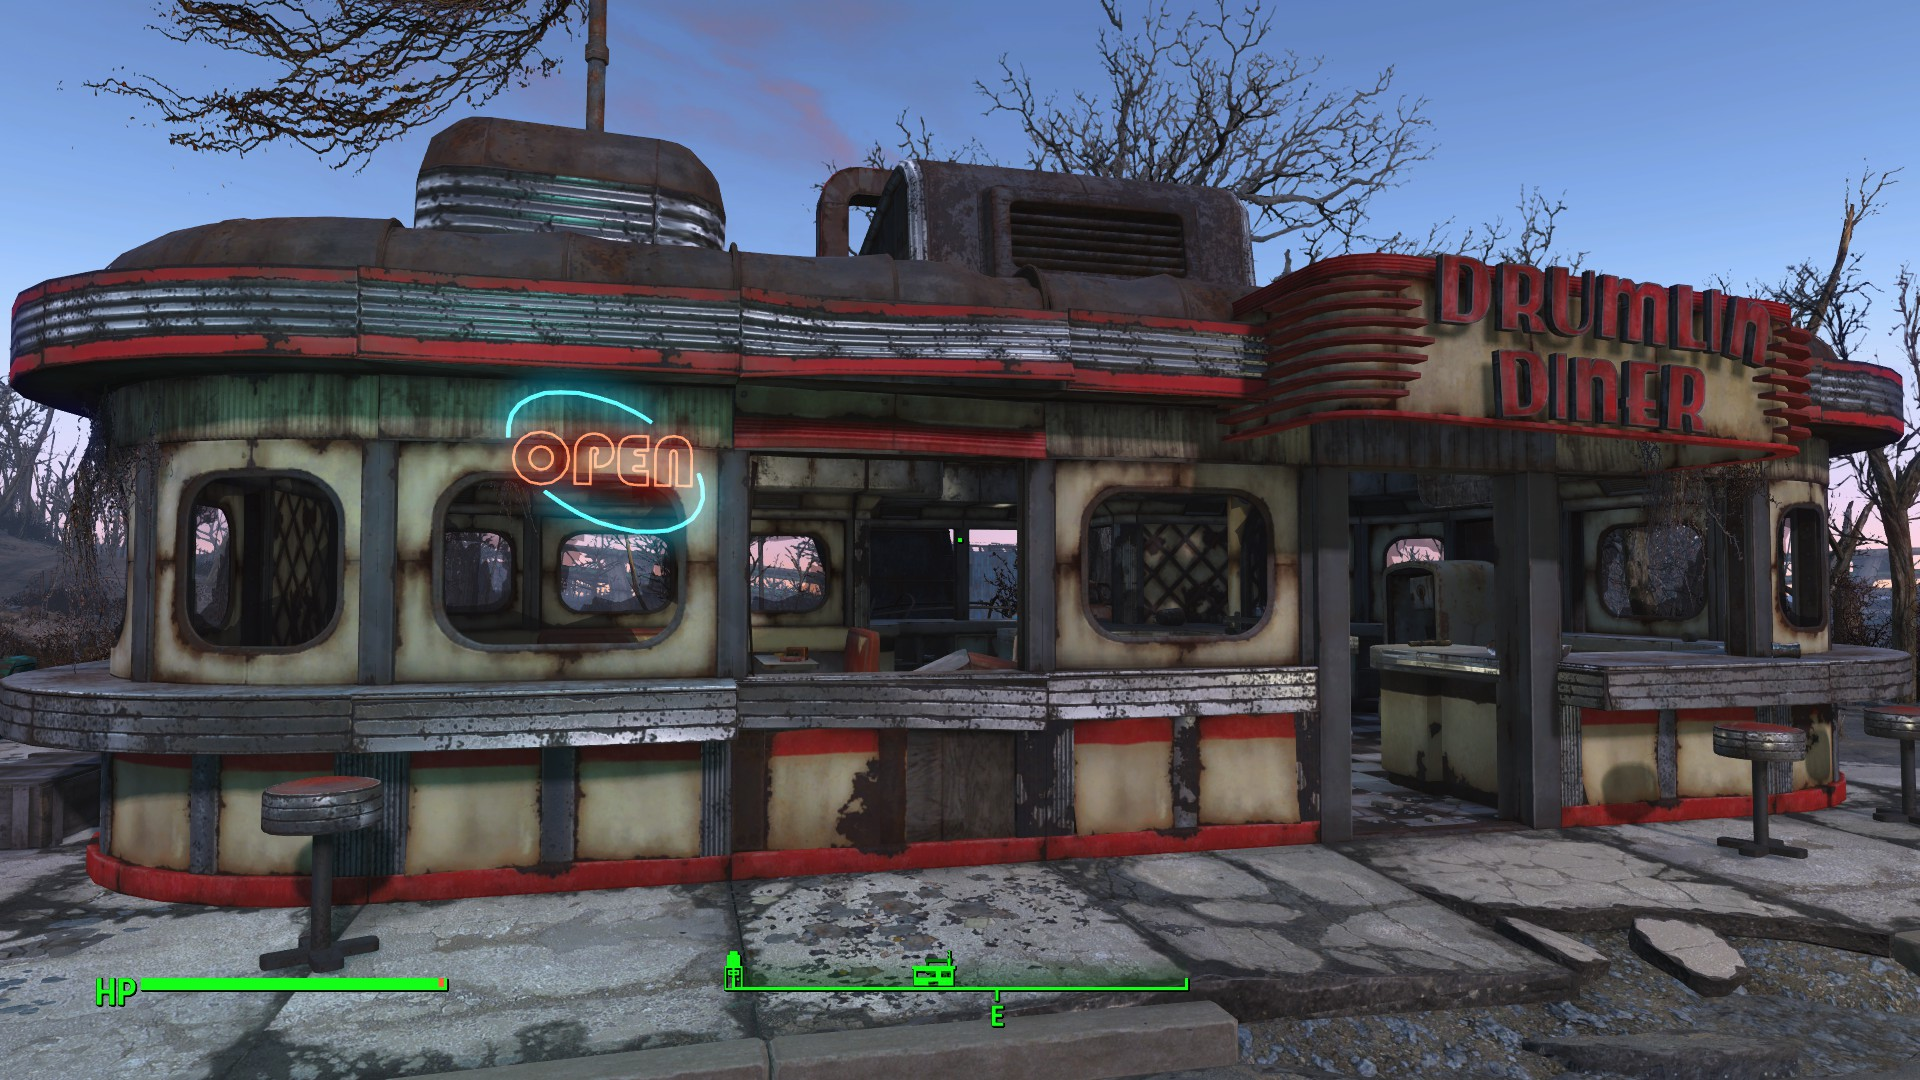 13 fallout 4 pc gameplay screenshots at ultra setting leaked for Fallout 4 mural